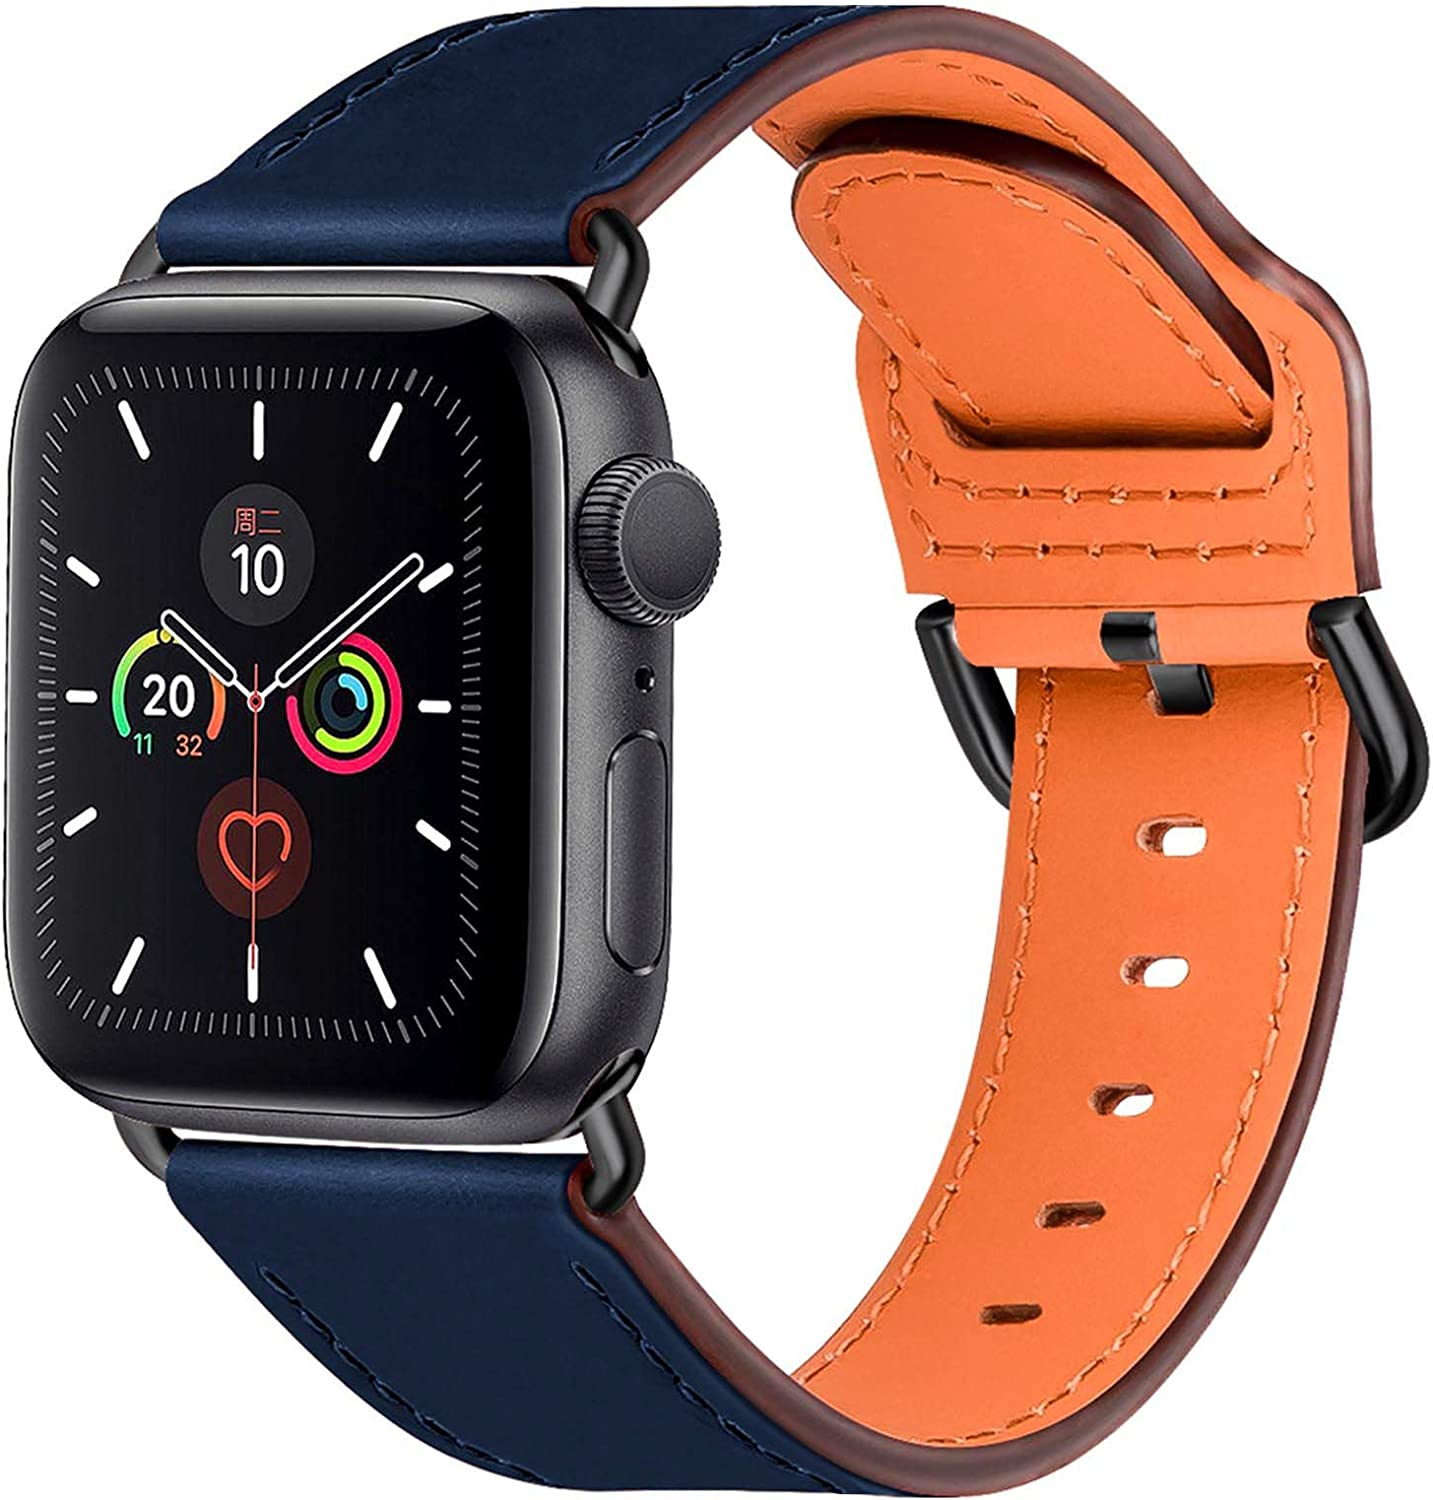 Compatible with Apple Watch Bands 44mm 42mm 40mm 38mm: Genuine Leather iWatch Band for Apple Watch SE Series 6 5 4 3 2 1, Dressy Smartwatch Strap for Women Men(Blue/Black, 42mm 44mm)